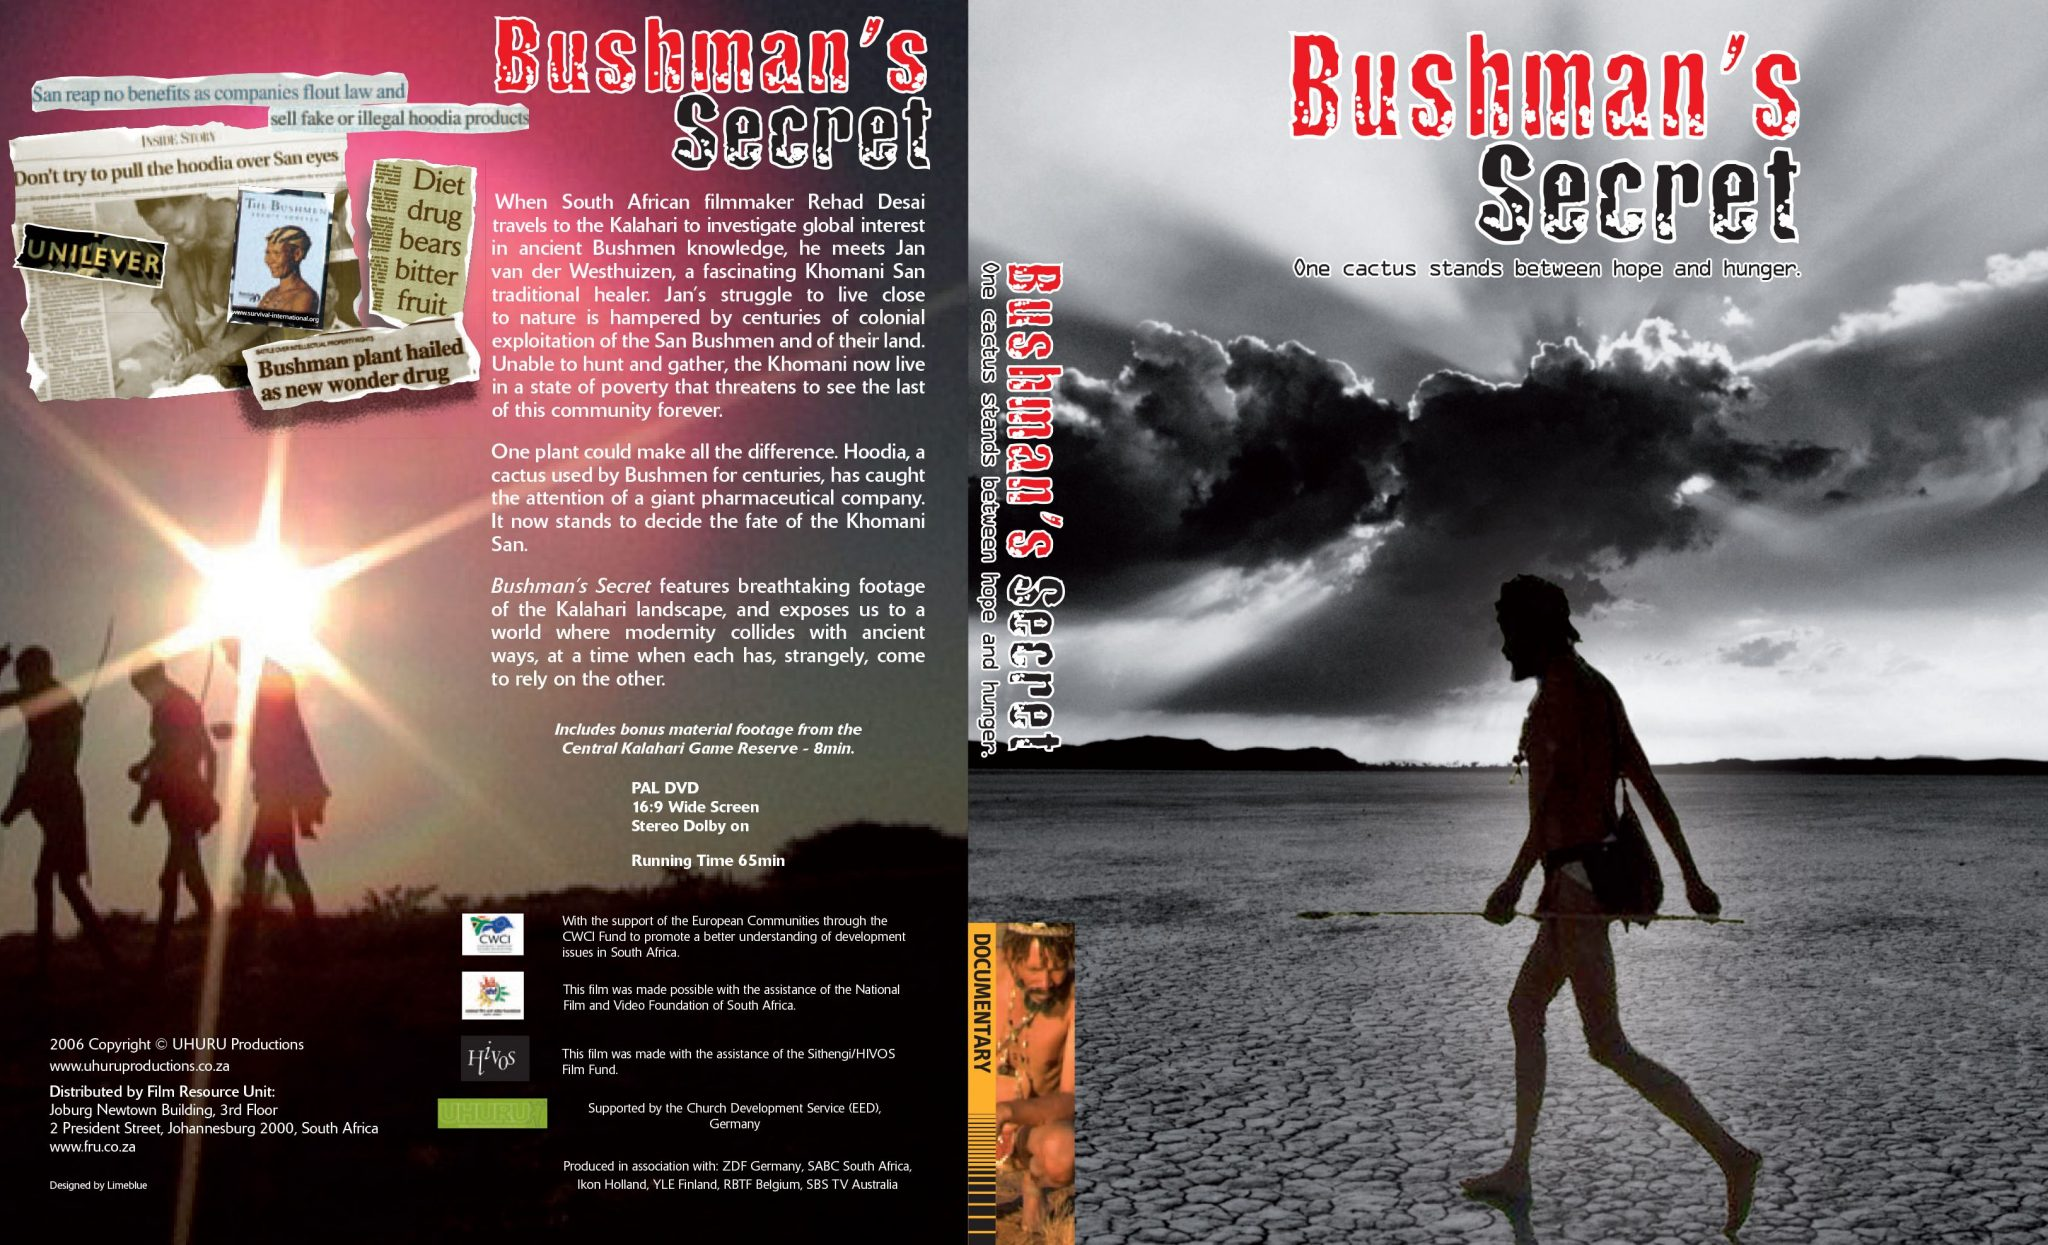 Bushman's Secret